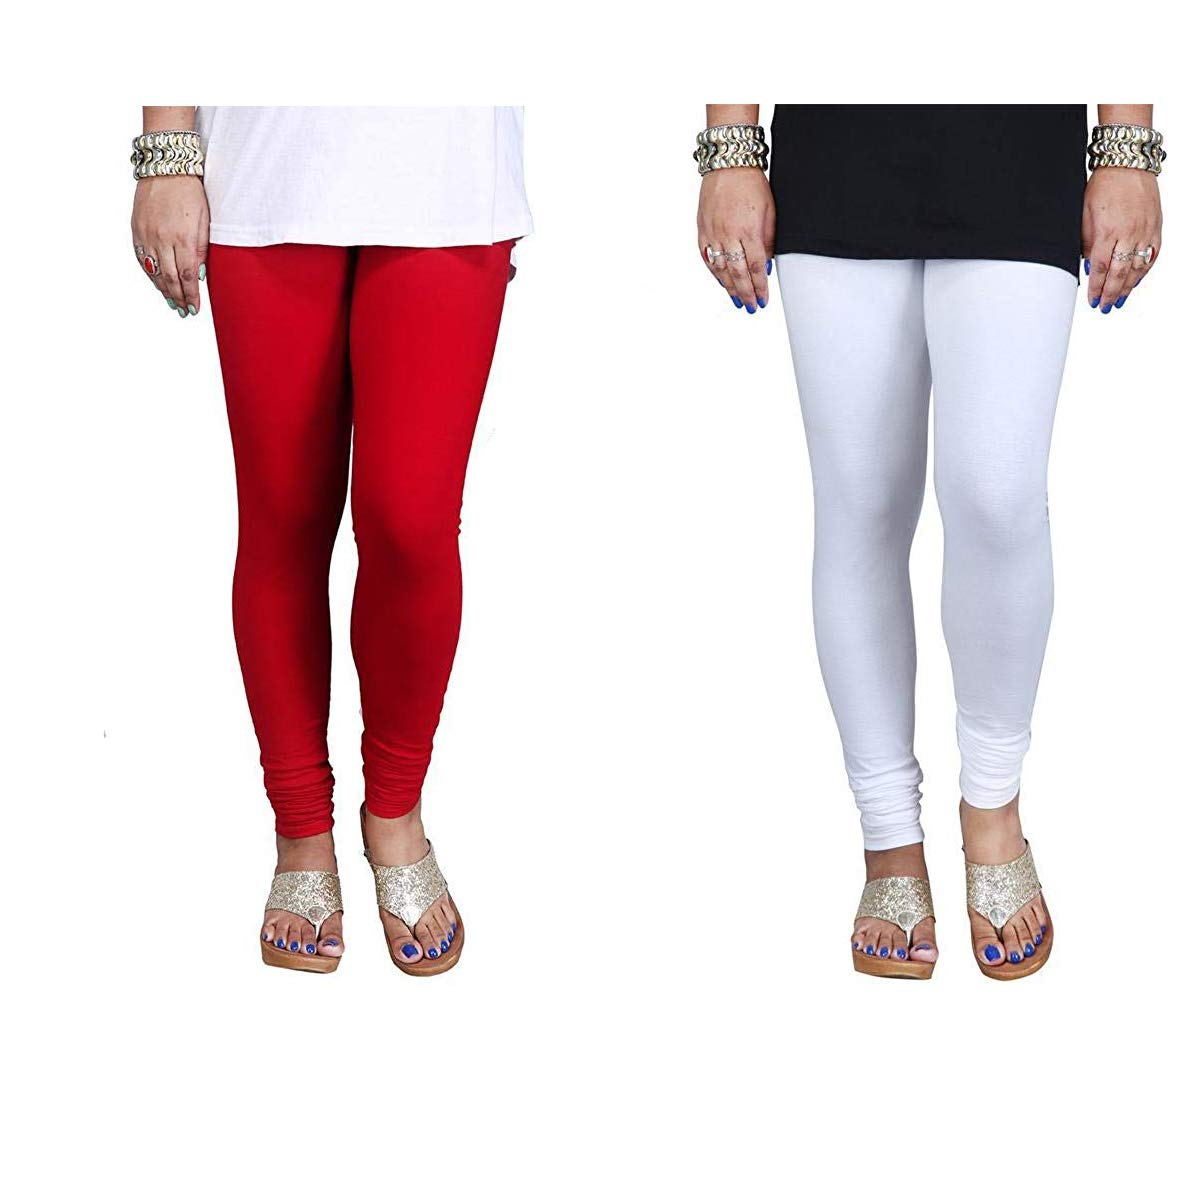 Women Cotton Lycra Full Length Churidar Red And White Legging Free Size Pack Of Two Amazon In Clothing Accessories